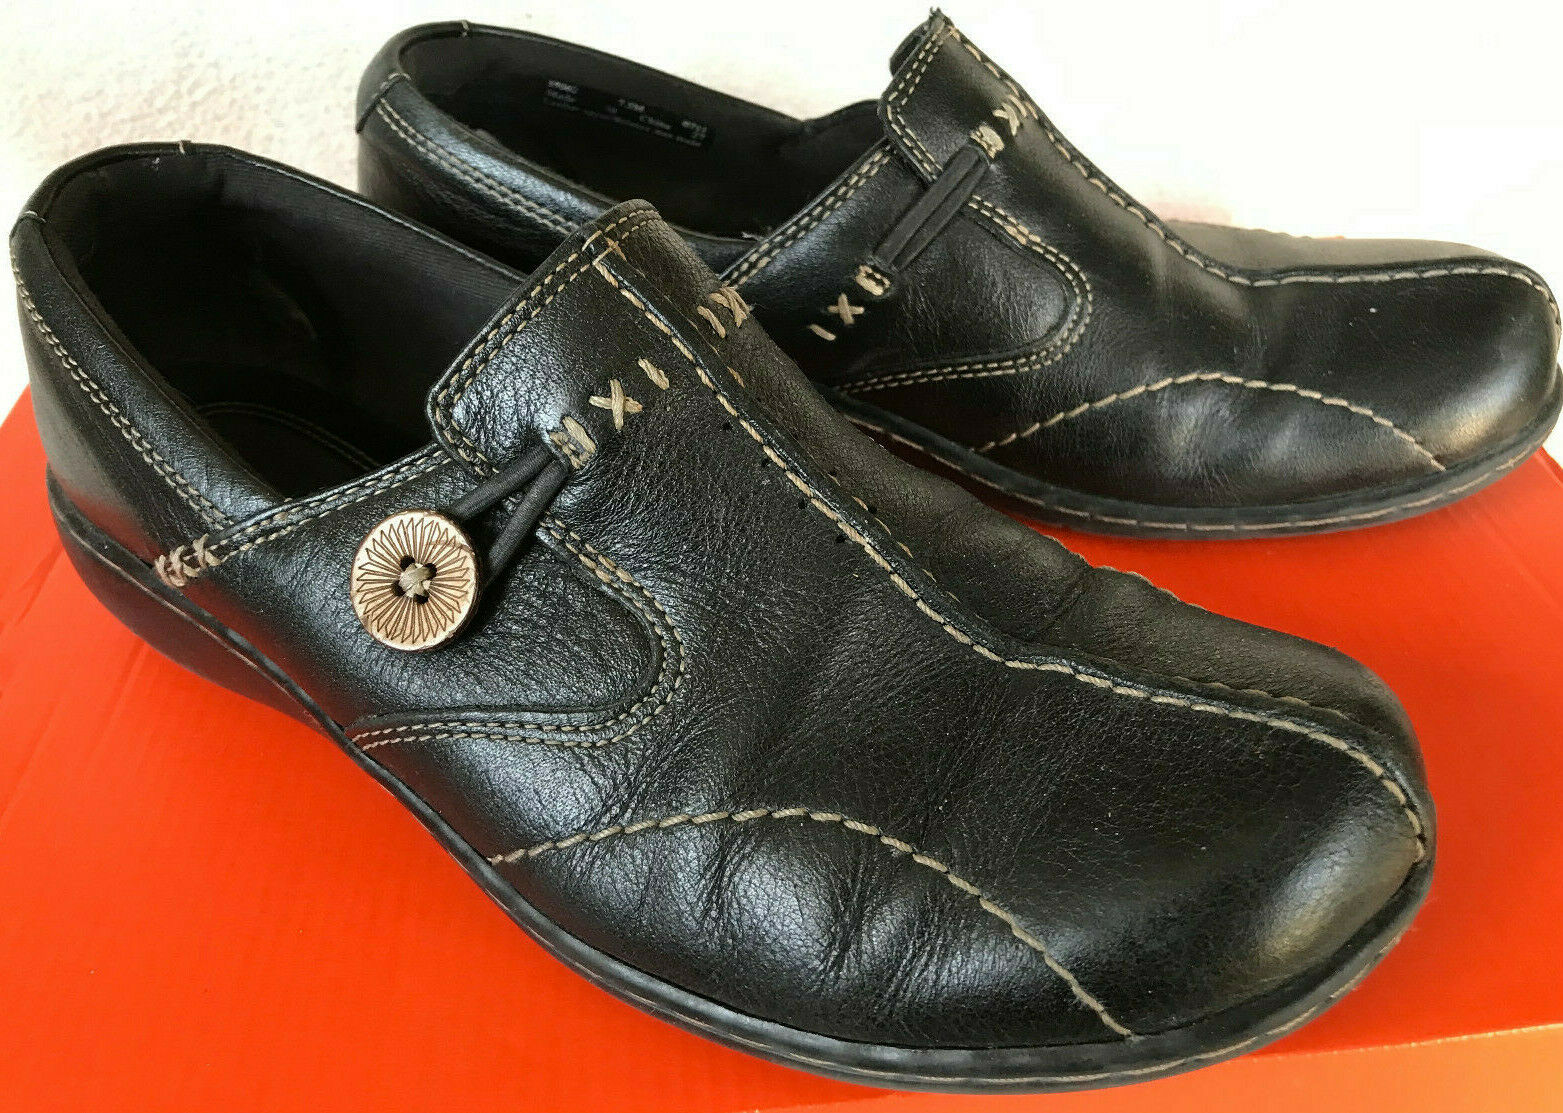 Clarks Sixty Delta 35062 Black Leather Button Slip-On Loafers shoes Women's 7.5